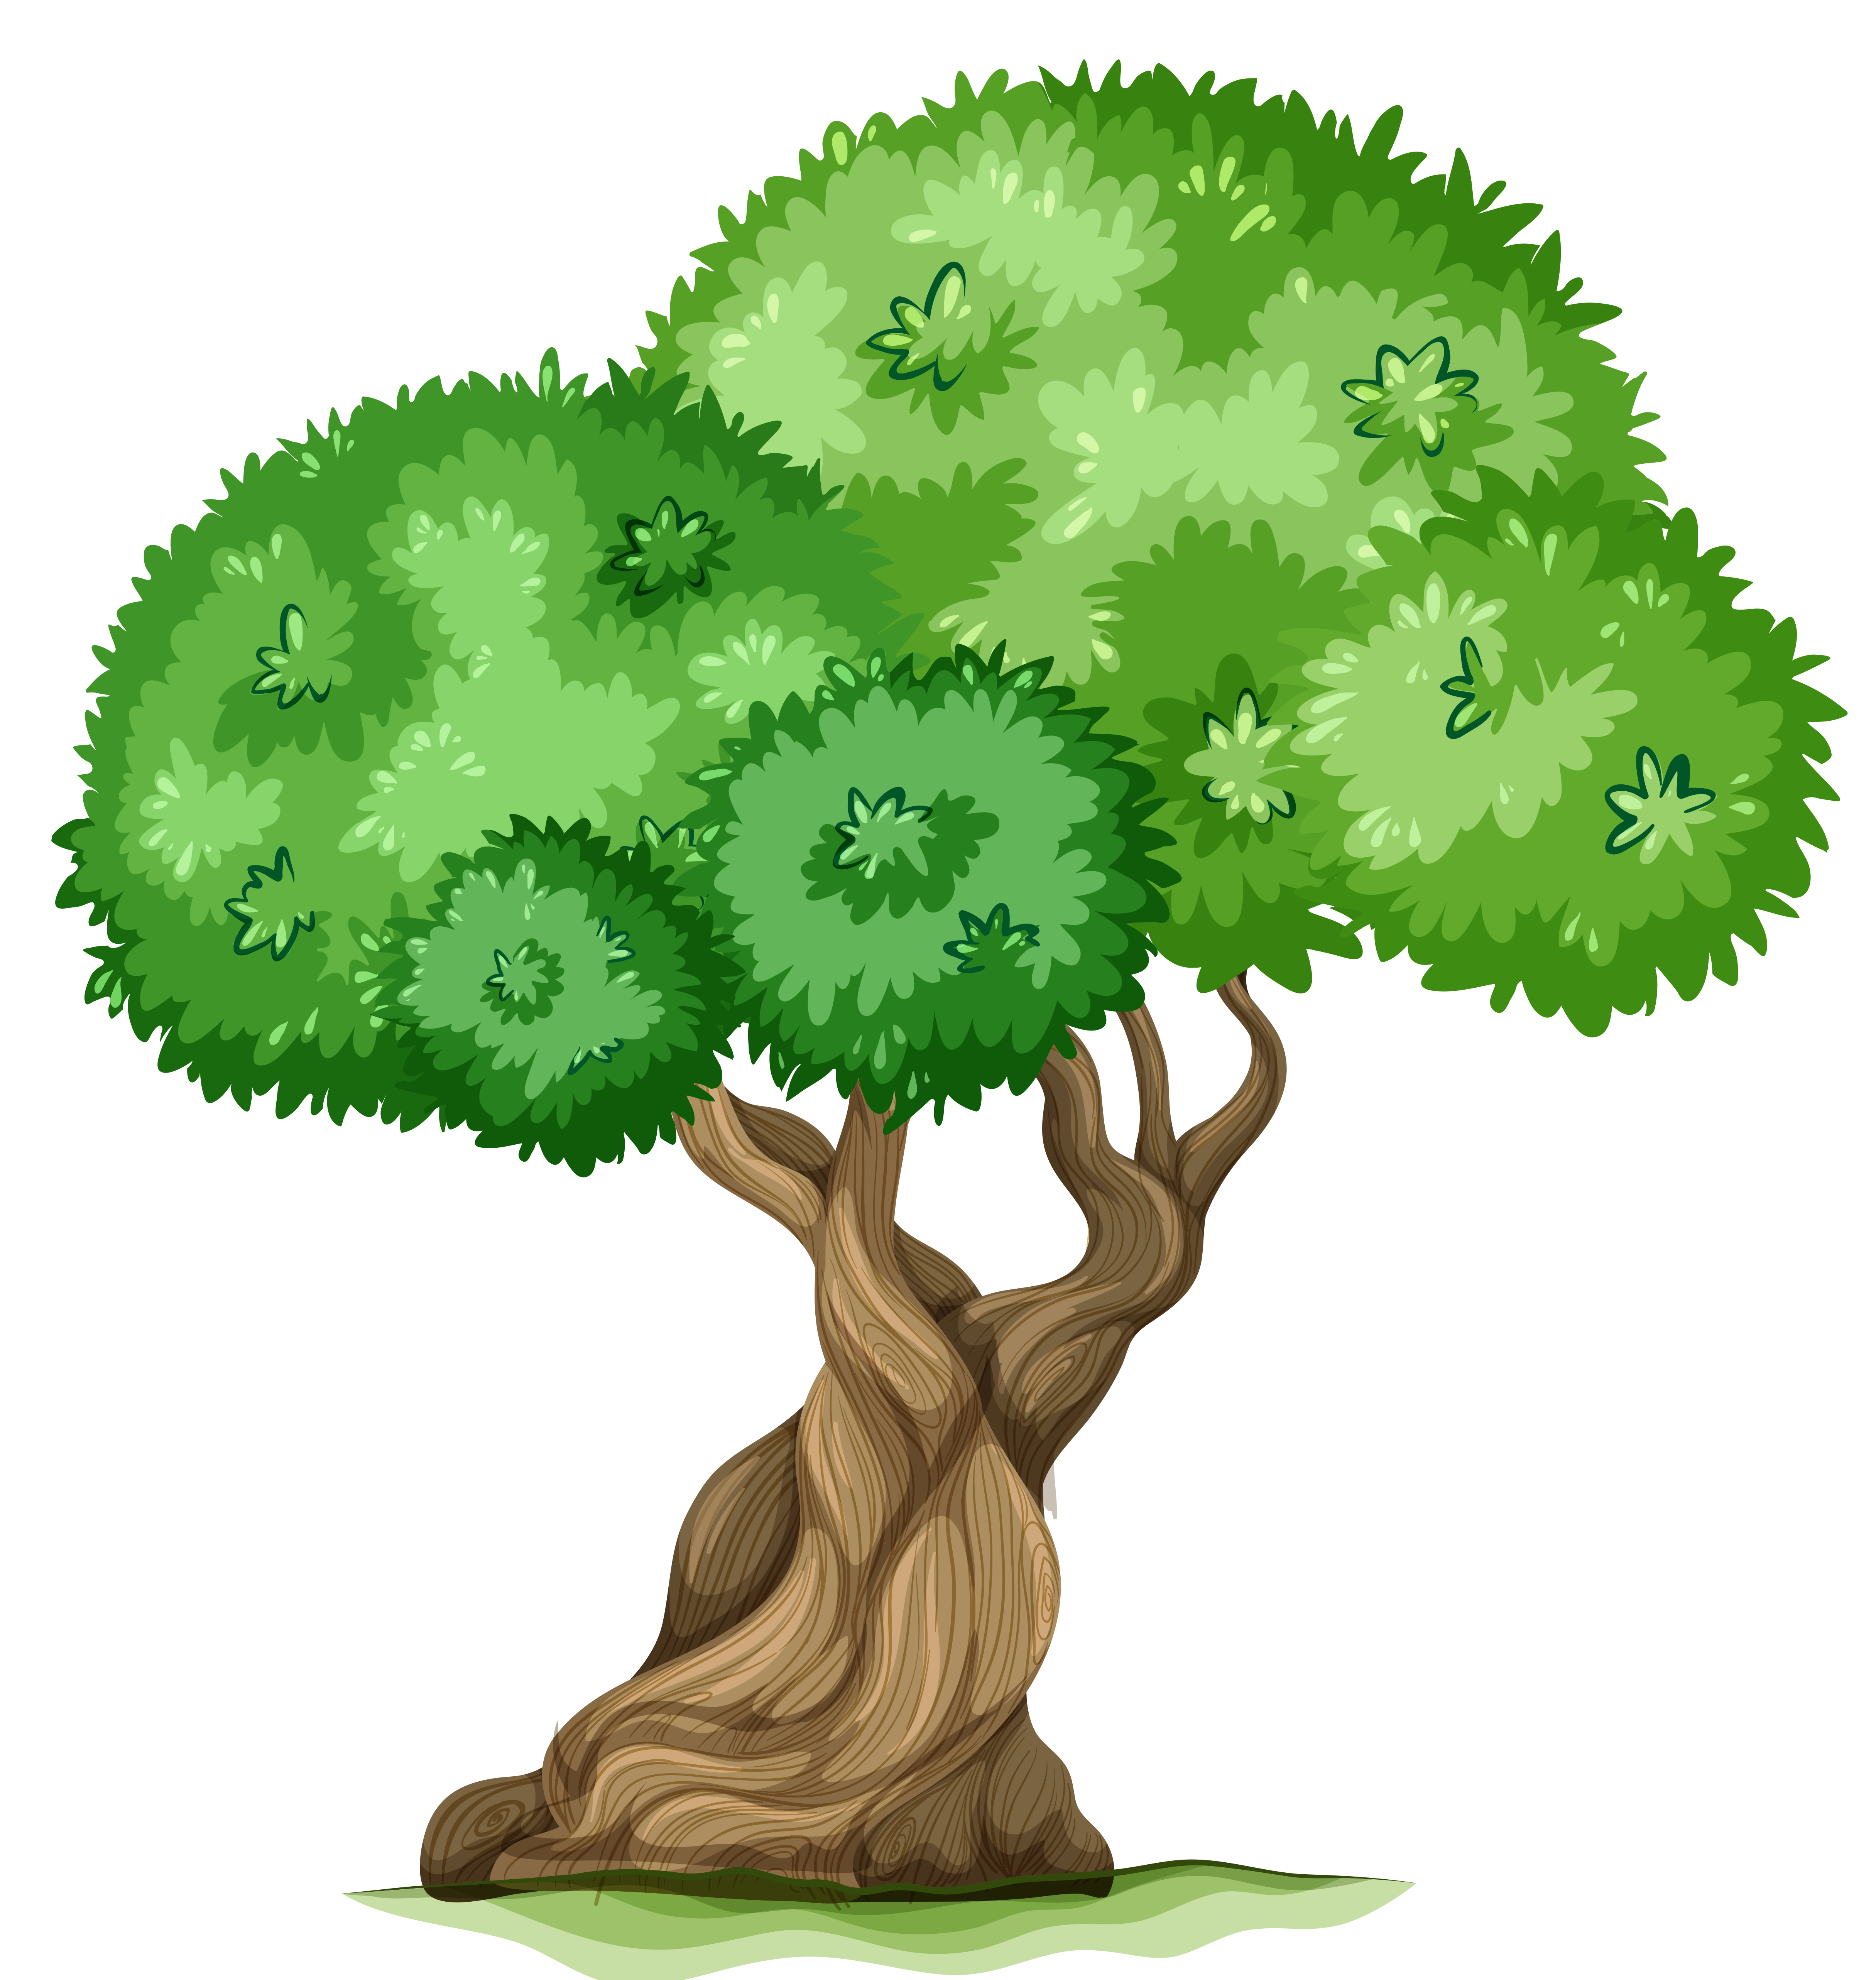 Tree clipart #3, Download drawings